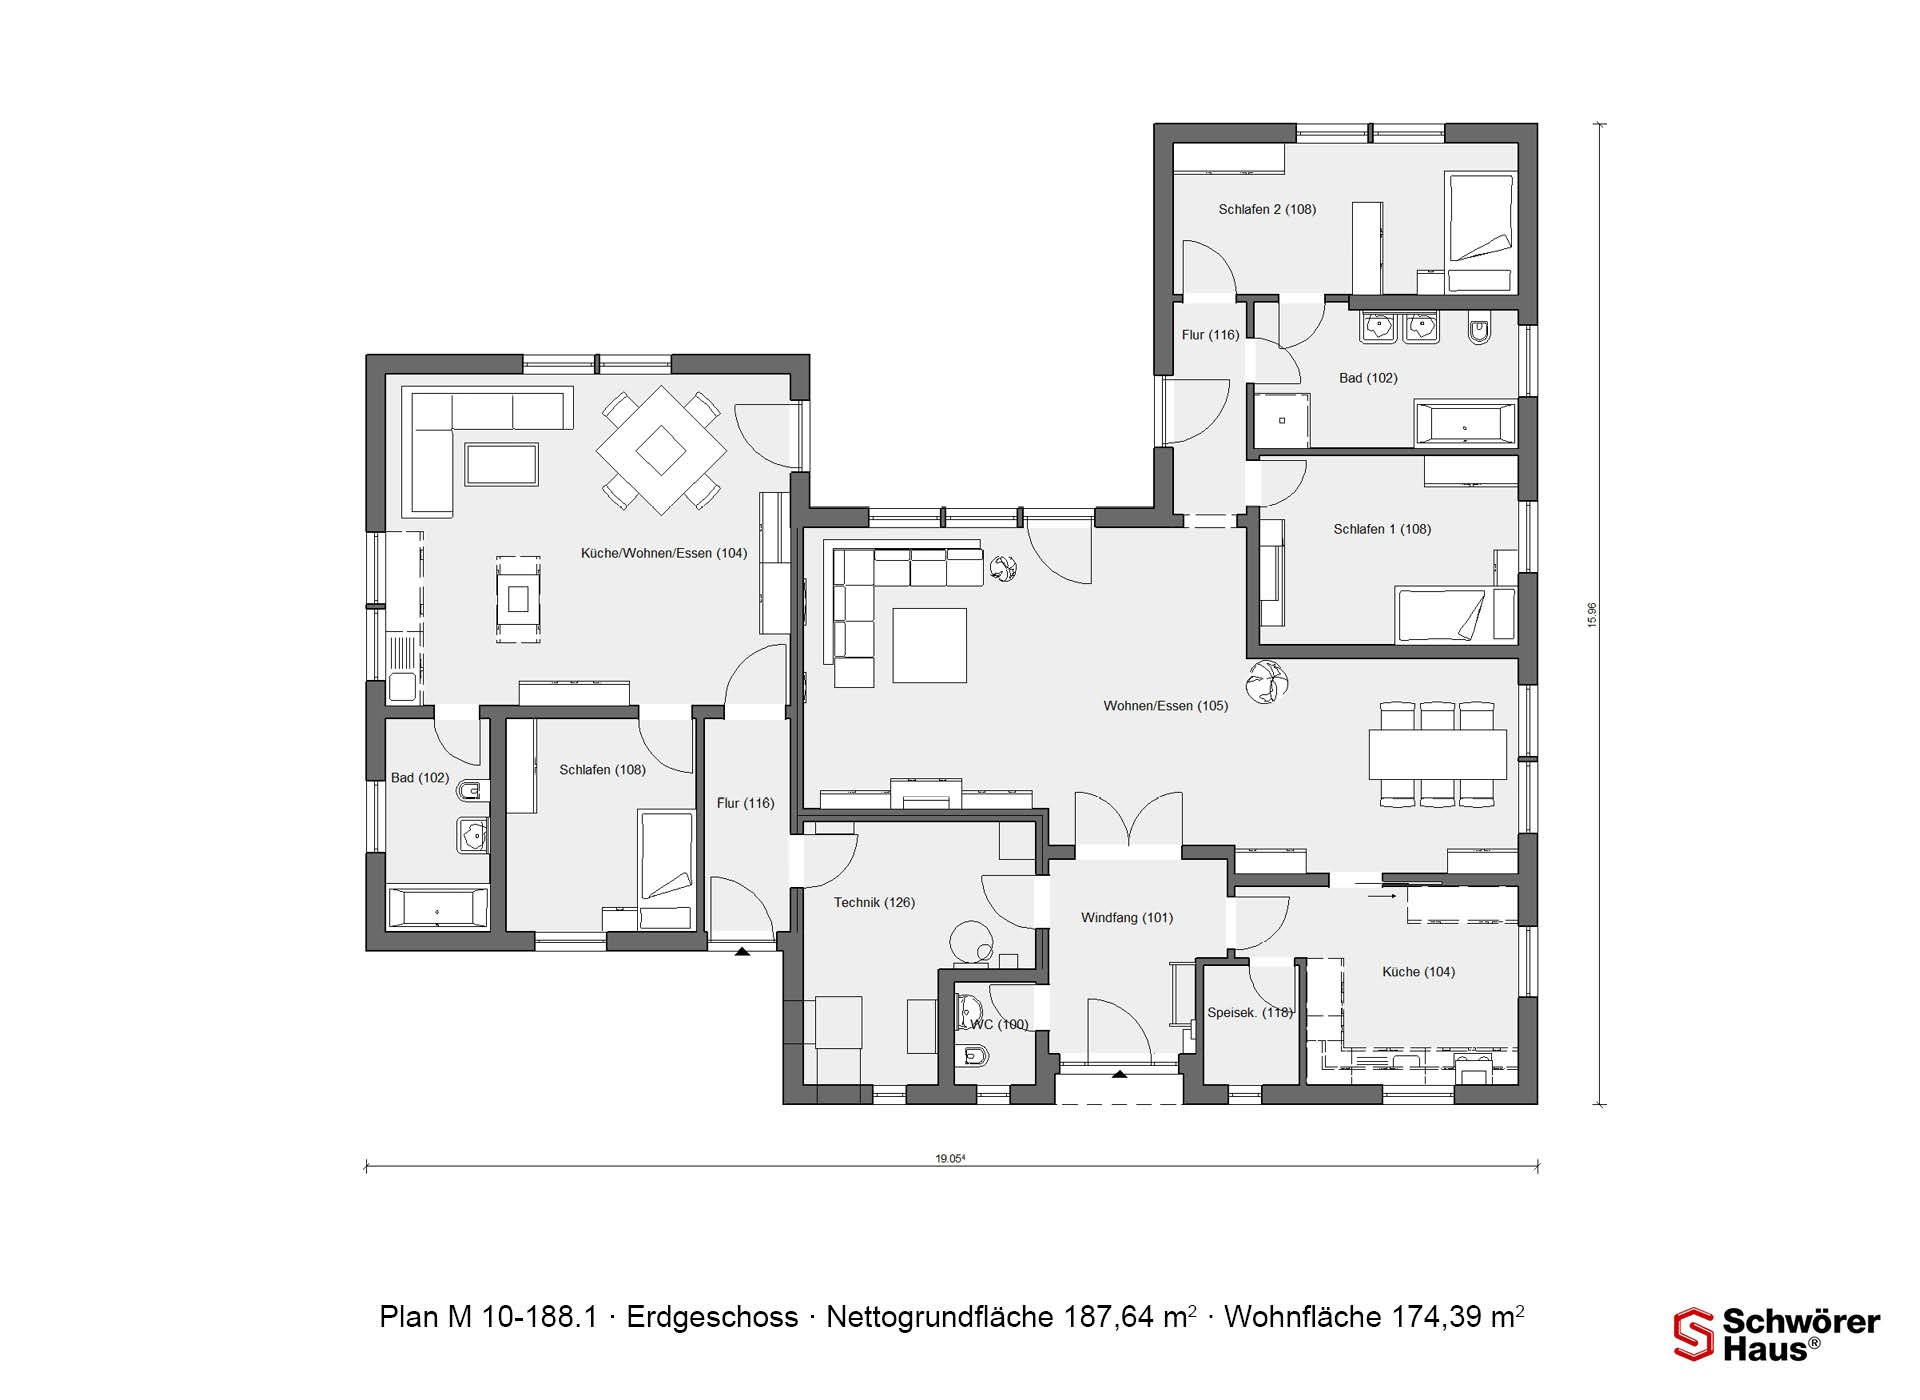 Bungalow In U Form Grundriss Erdgeschoss Bungalow In U-form M 10-188.1 ...